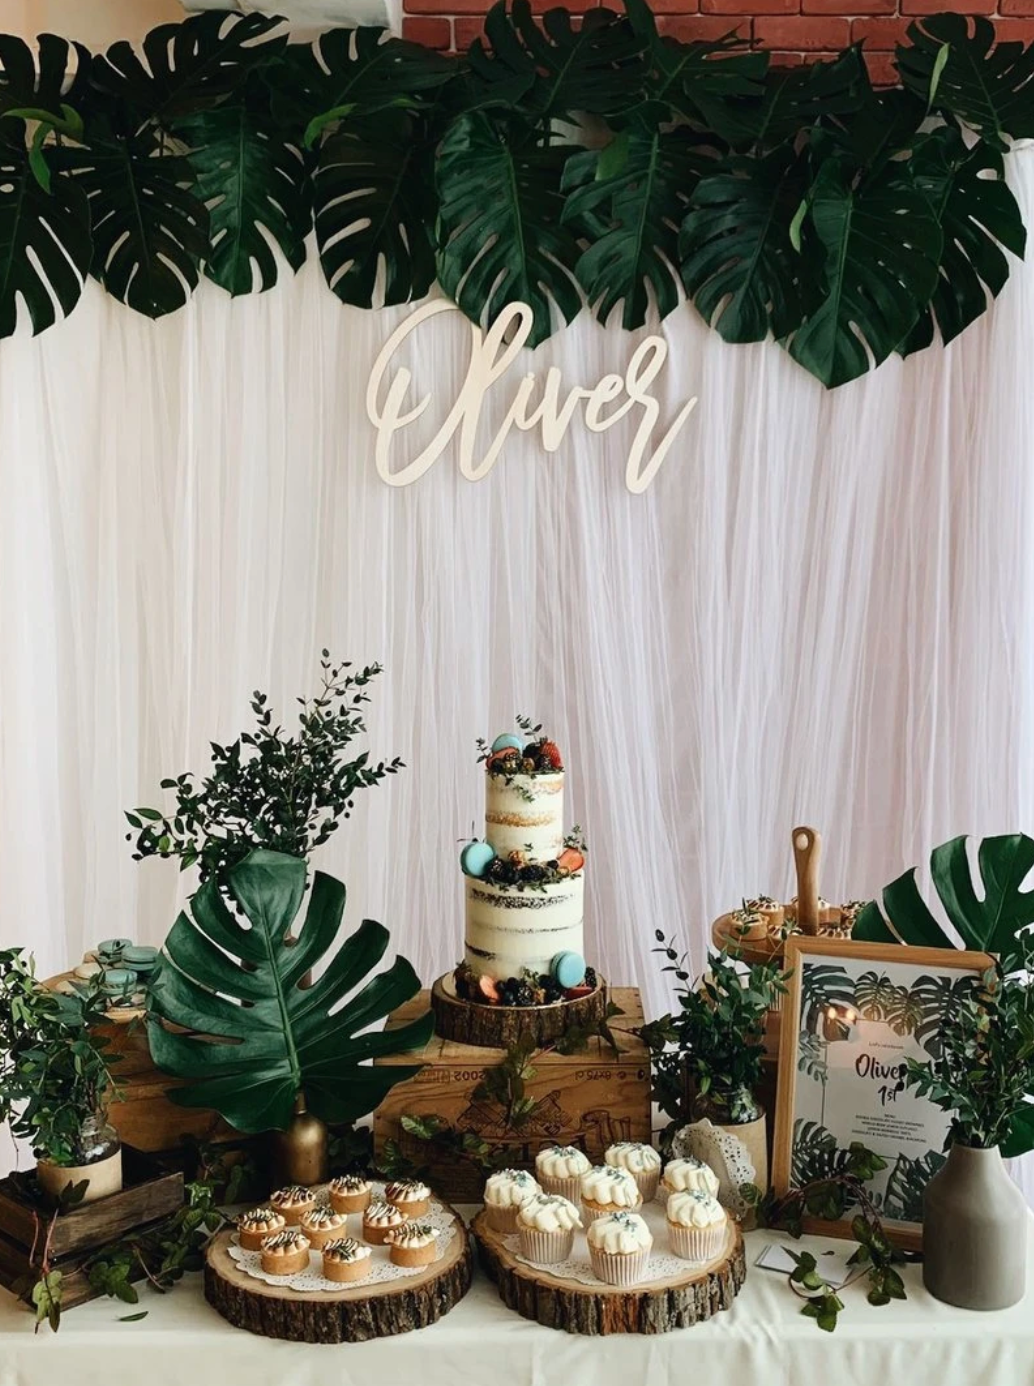 Rustic Forest Theme Dessert Table